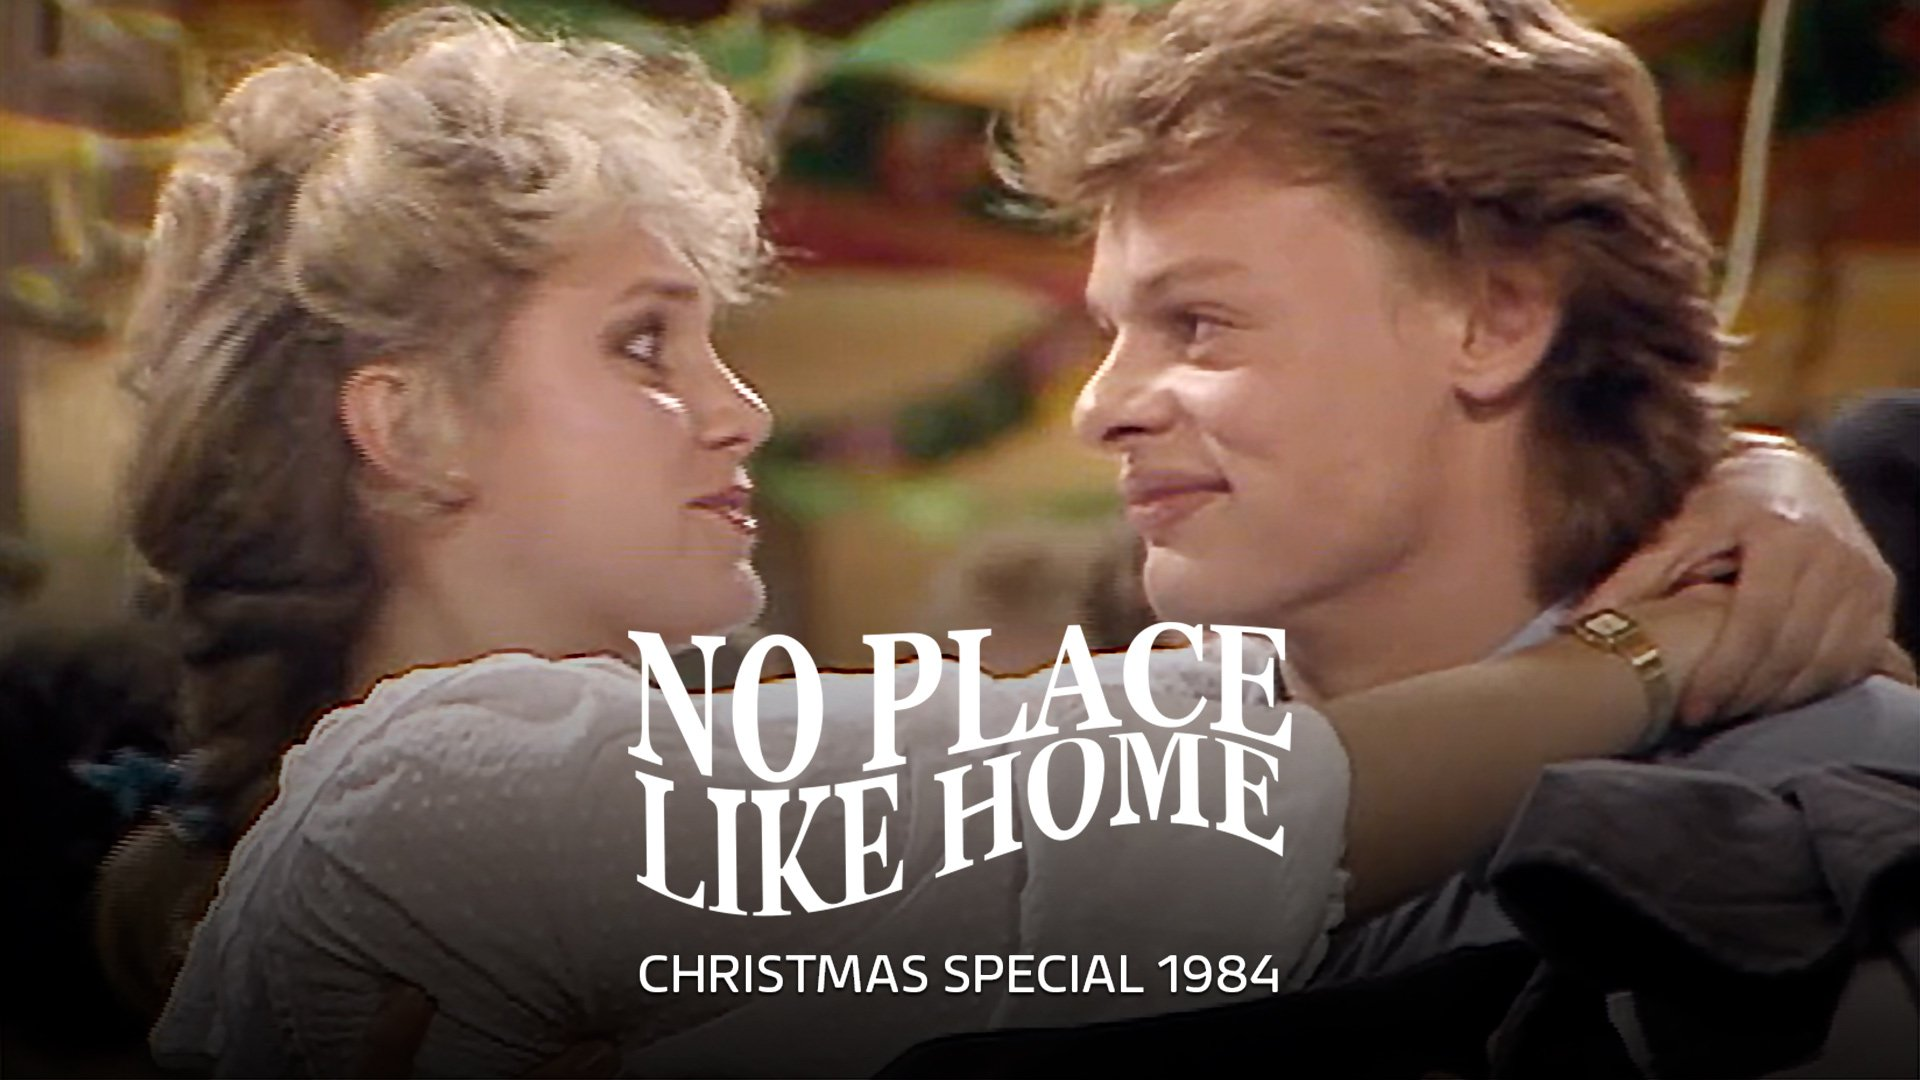 No Place Like Home Christmas Special 1984 on BritBox UK